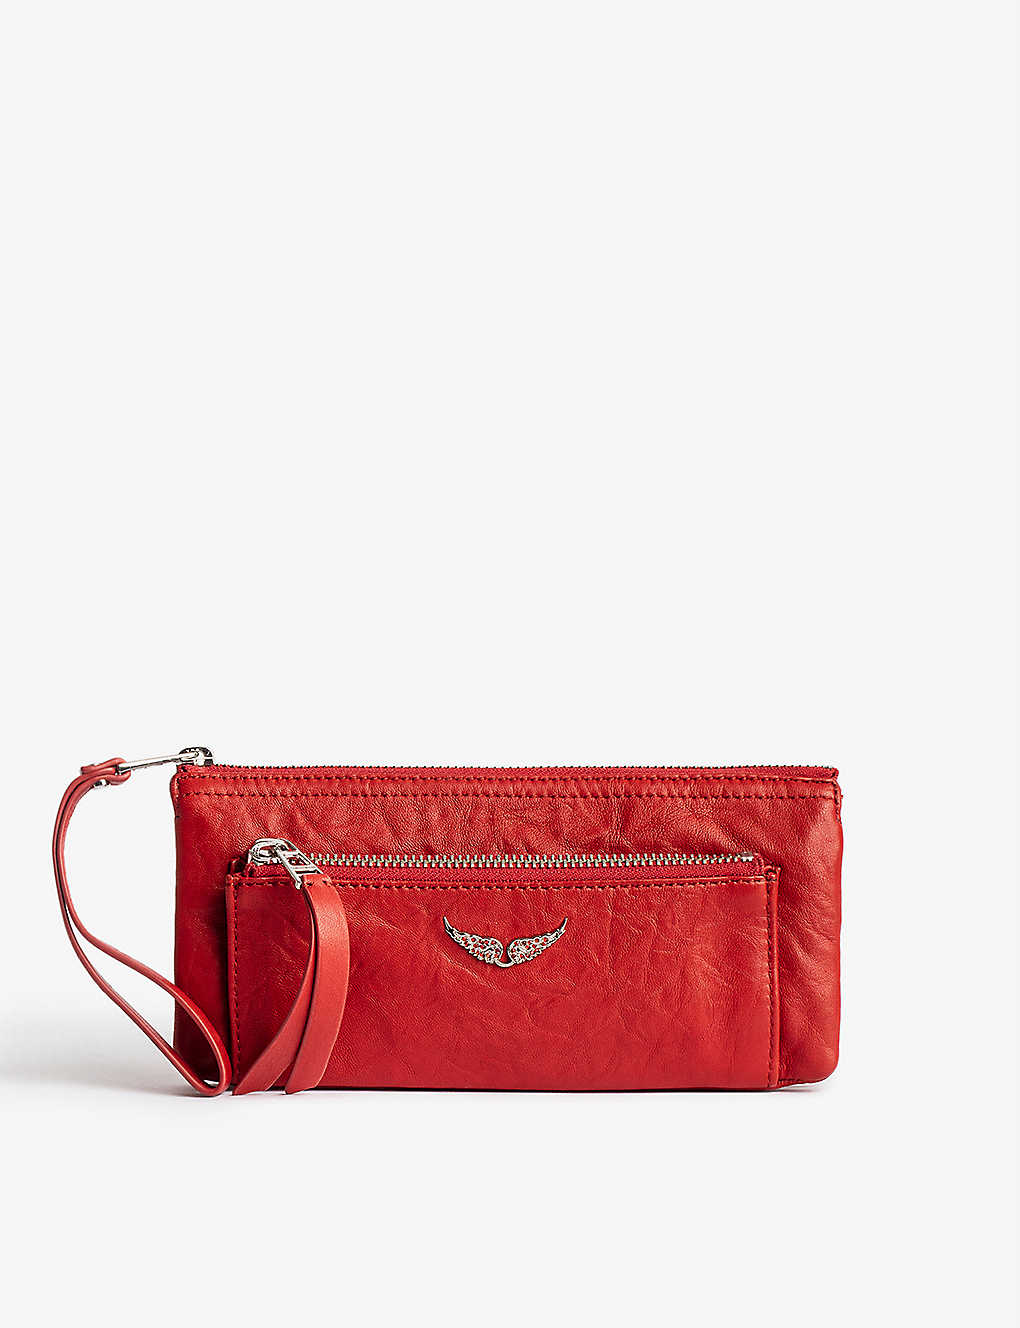 ZADIG&VOLTAIRE: Etoile lambskin leather clutch bag